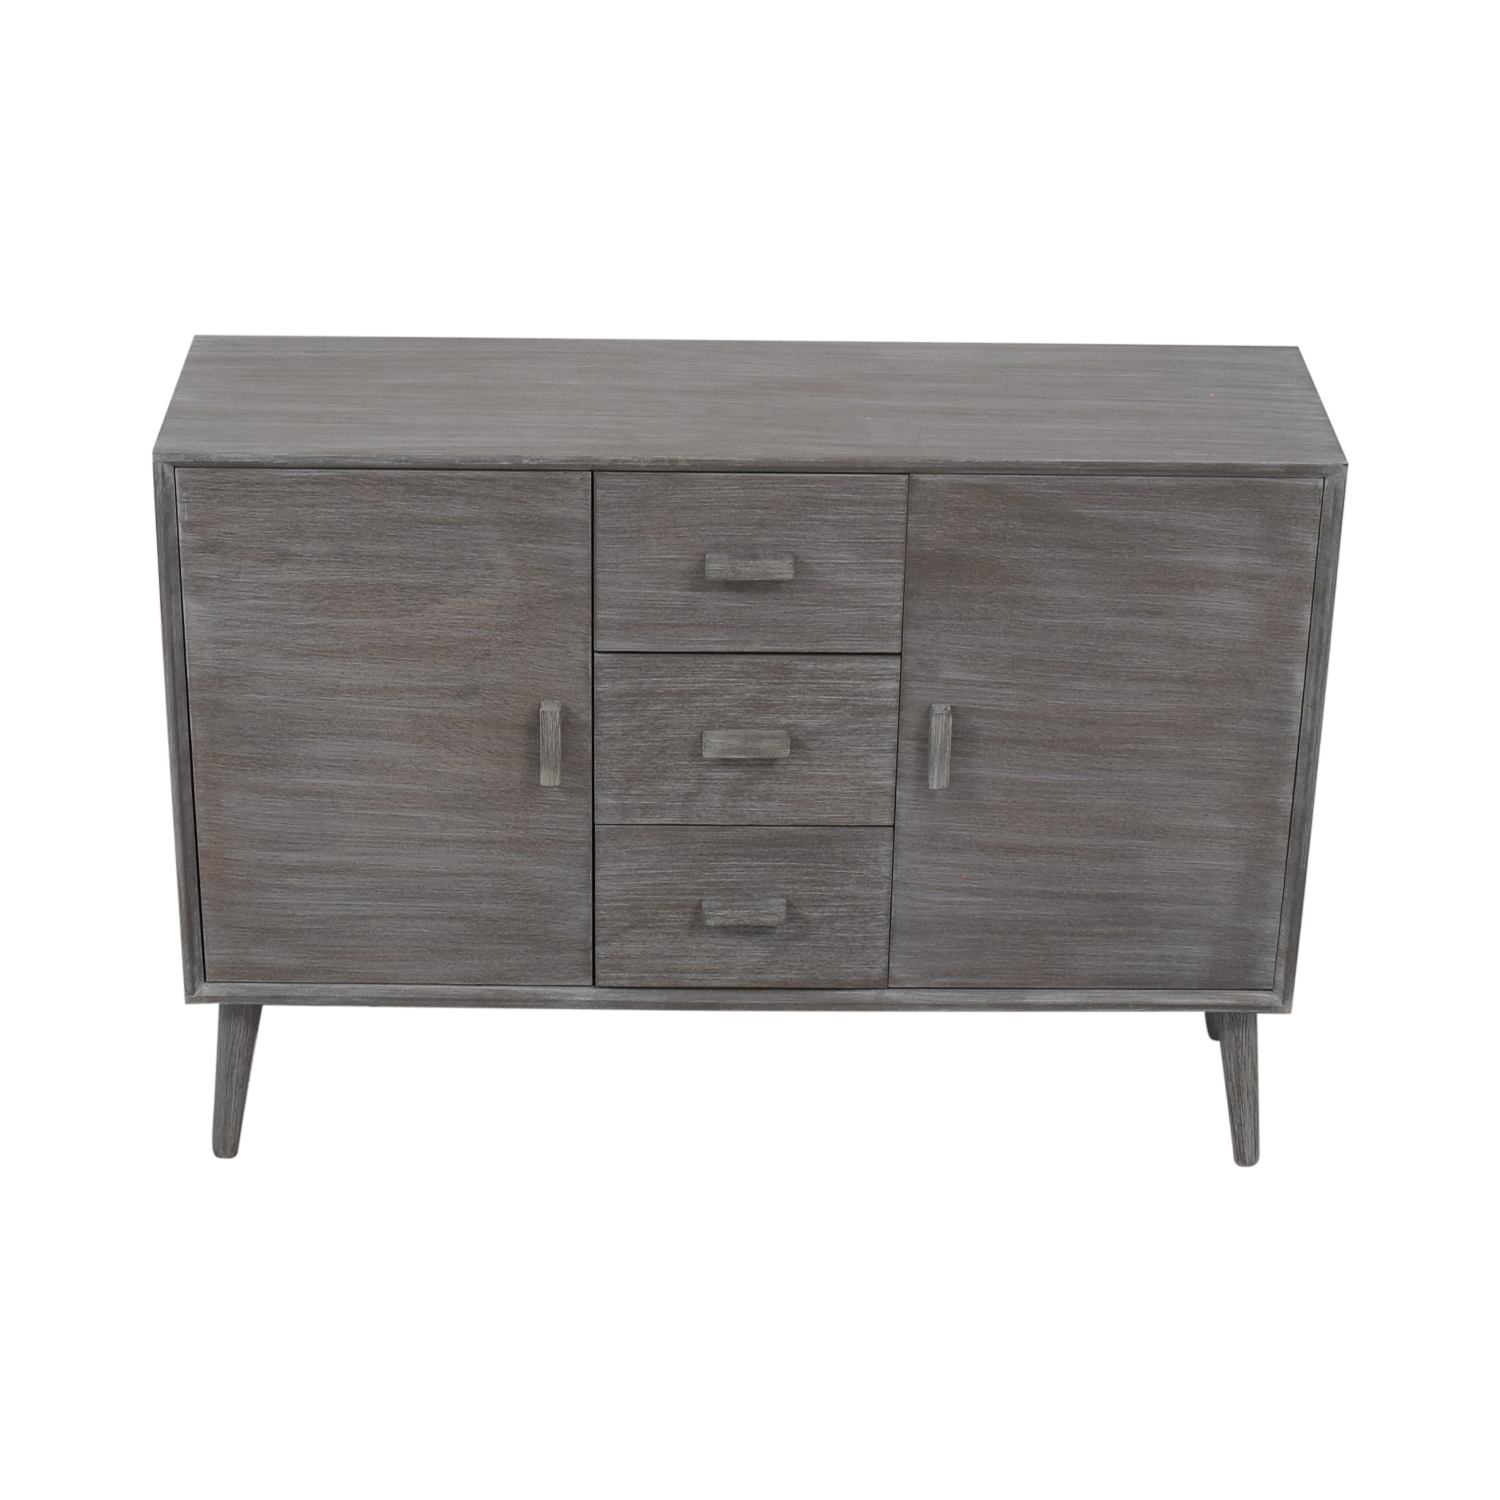 Grey Cabinet with Three Drawers Cabinets & Sideboards